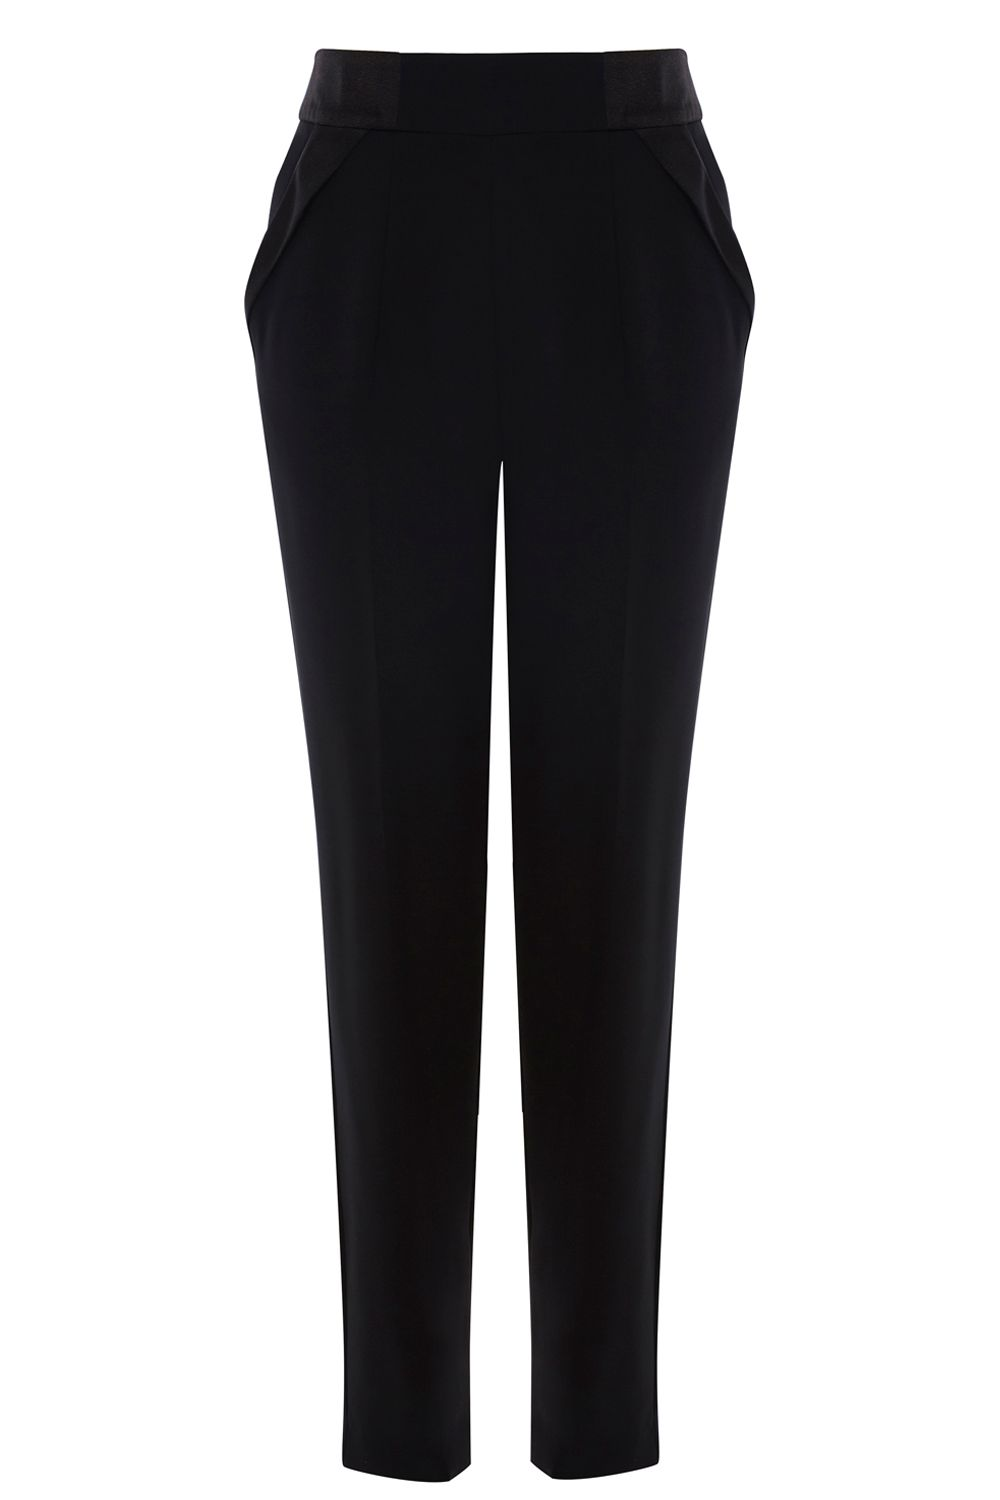 Coast Madrid Trouser, Black